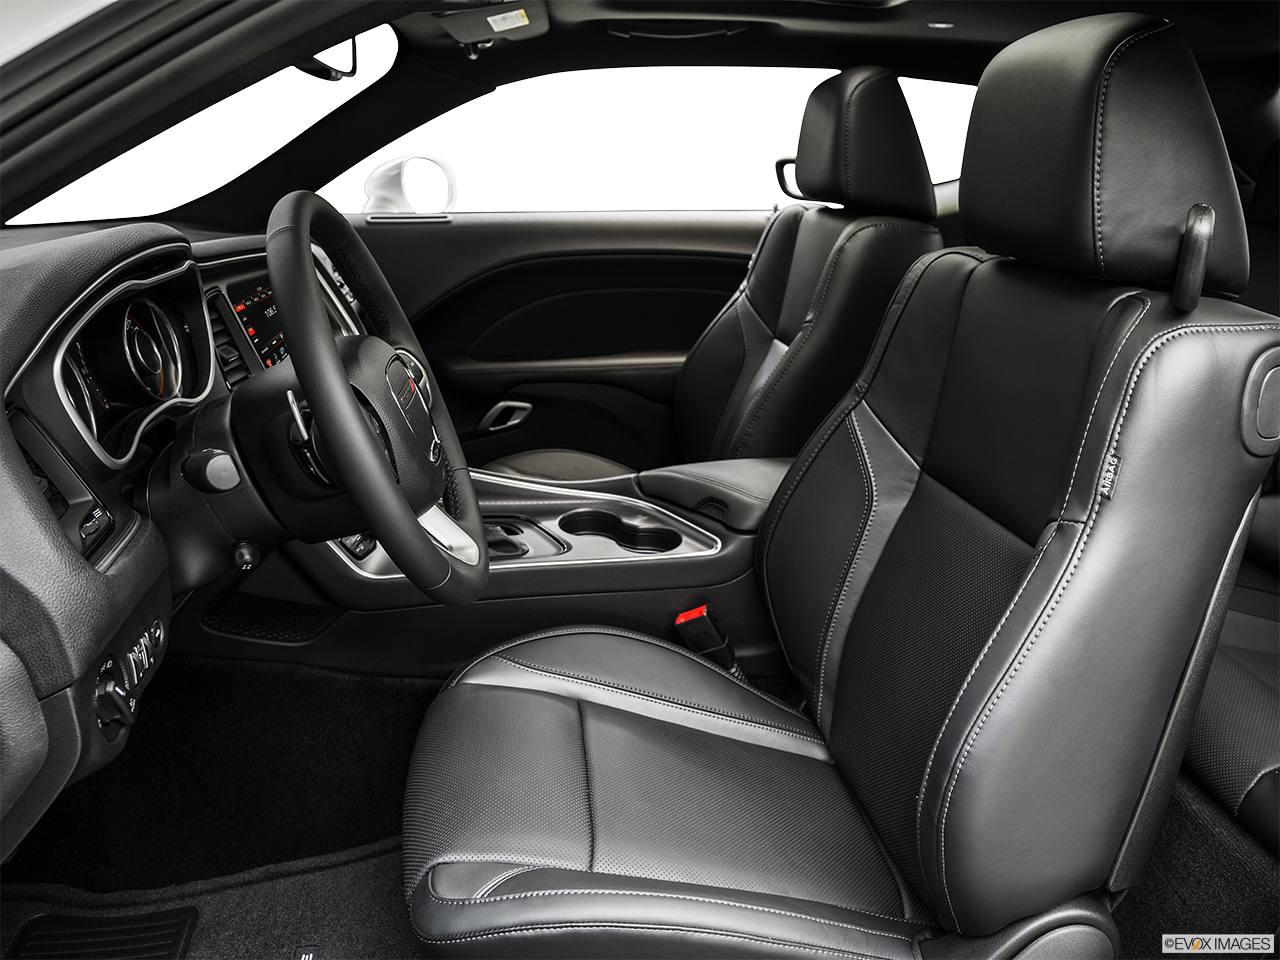 Dodge Challenger Sxt Interior Awesome Not Sure If Itus An Option On The Sxt Model With Dodge